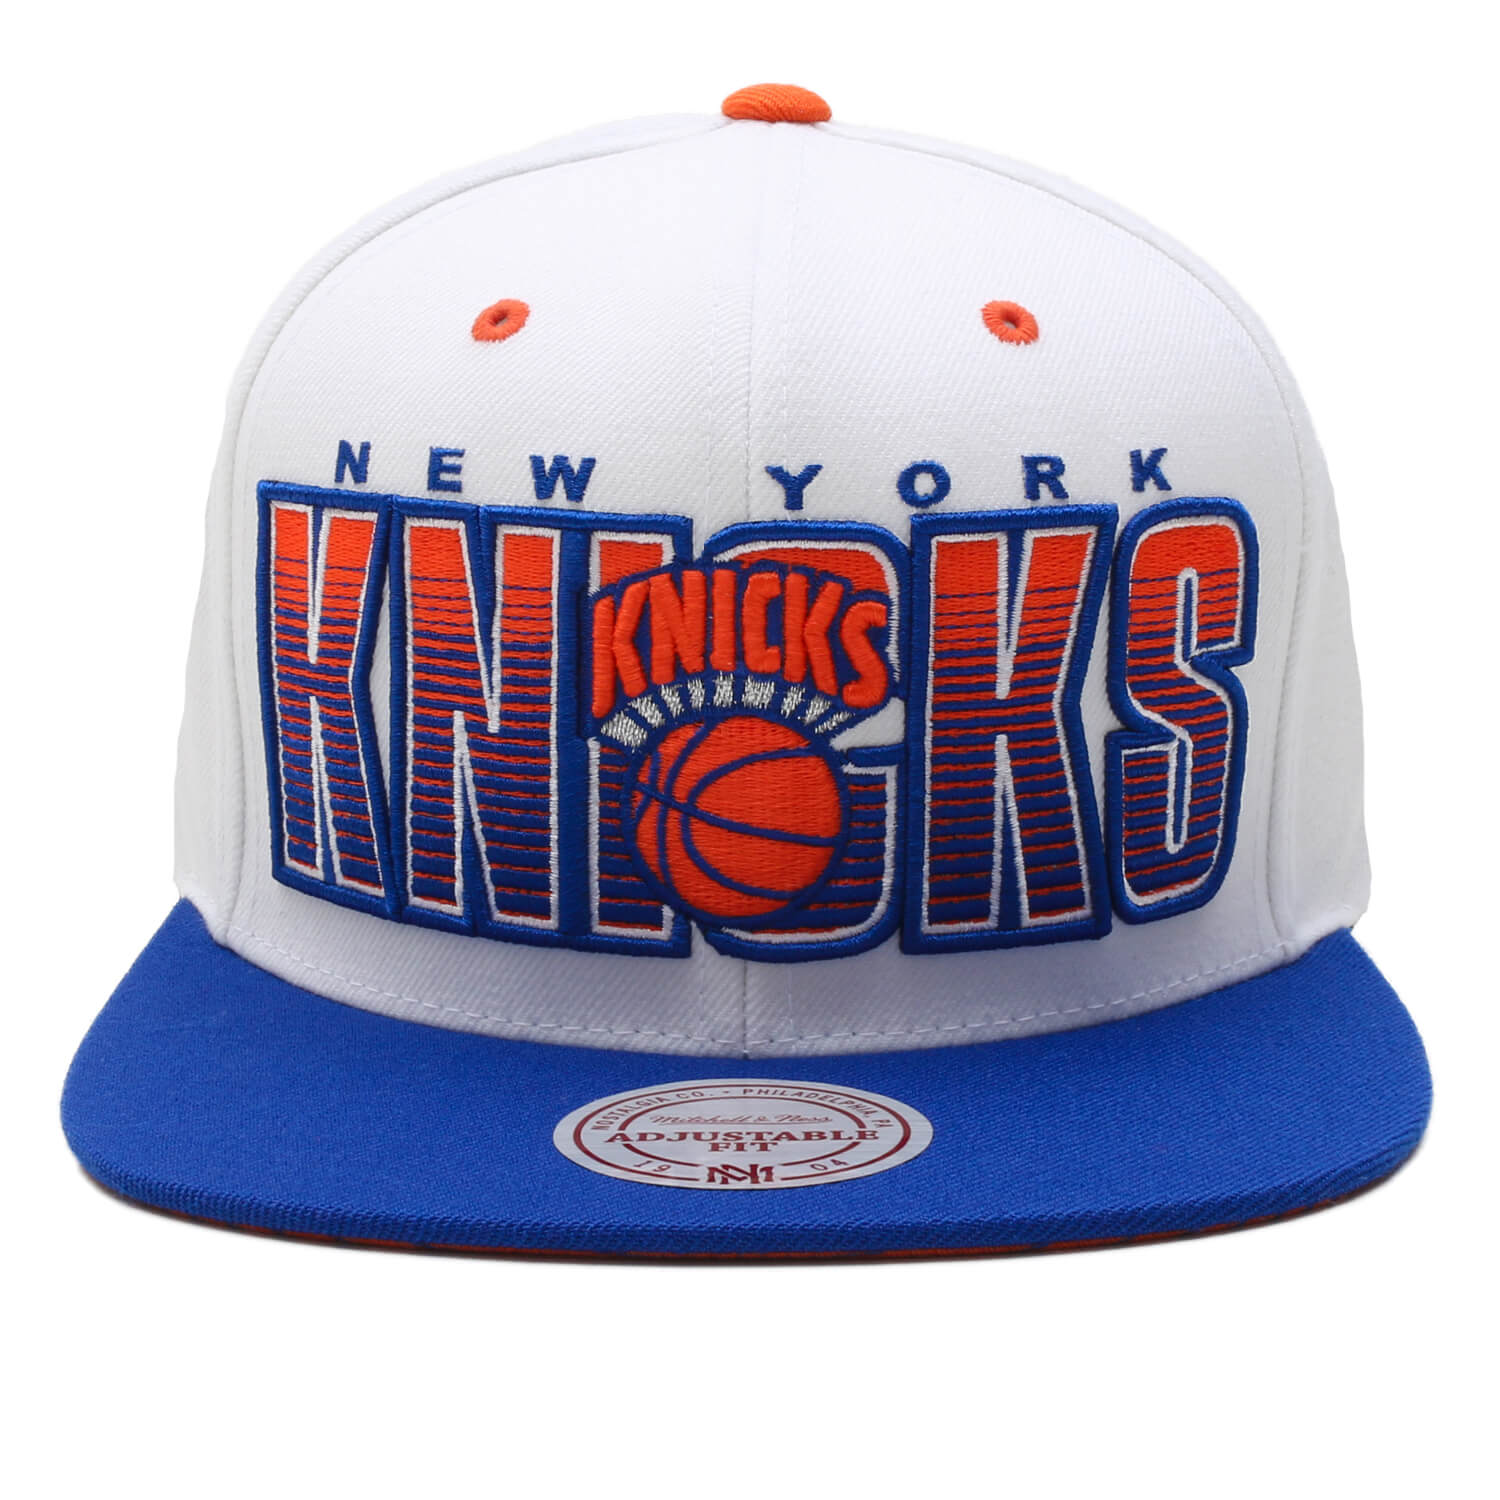 Boné Mitchell & Ness Snapback New York Knicks Branco / Azul